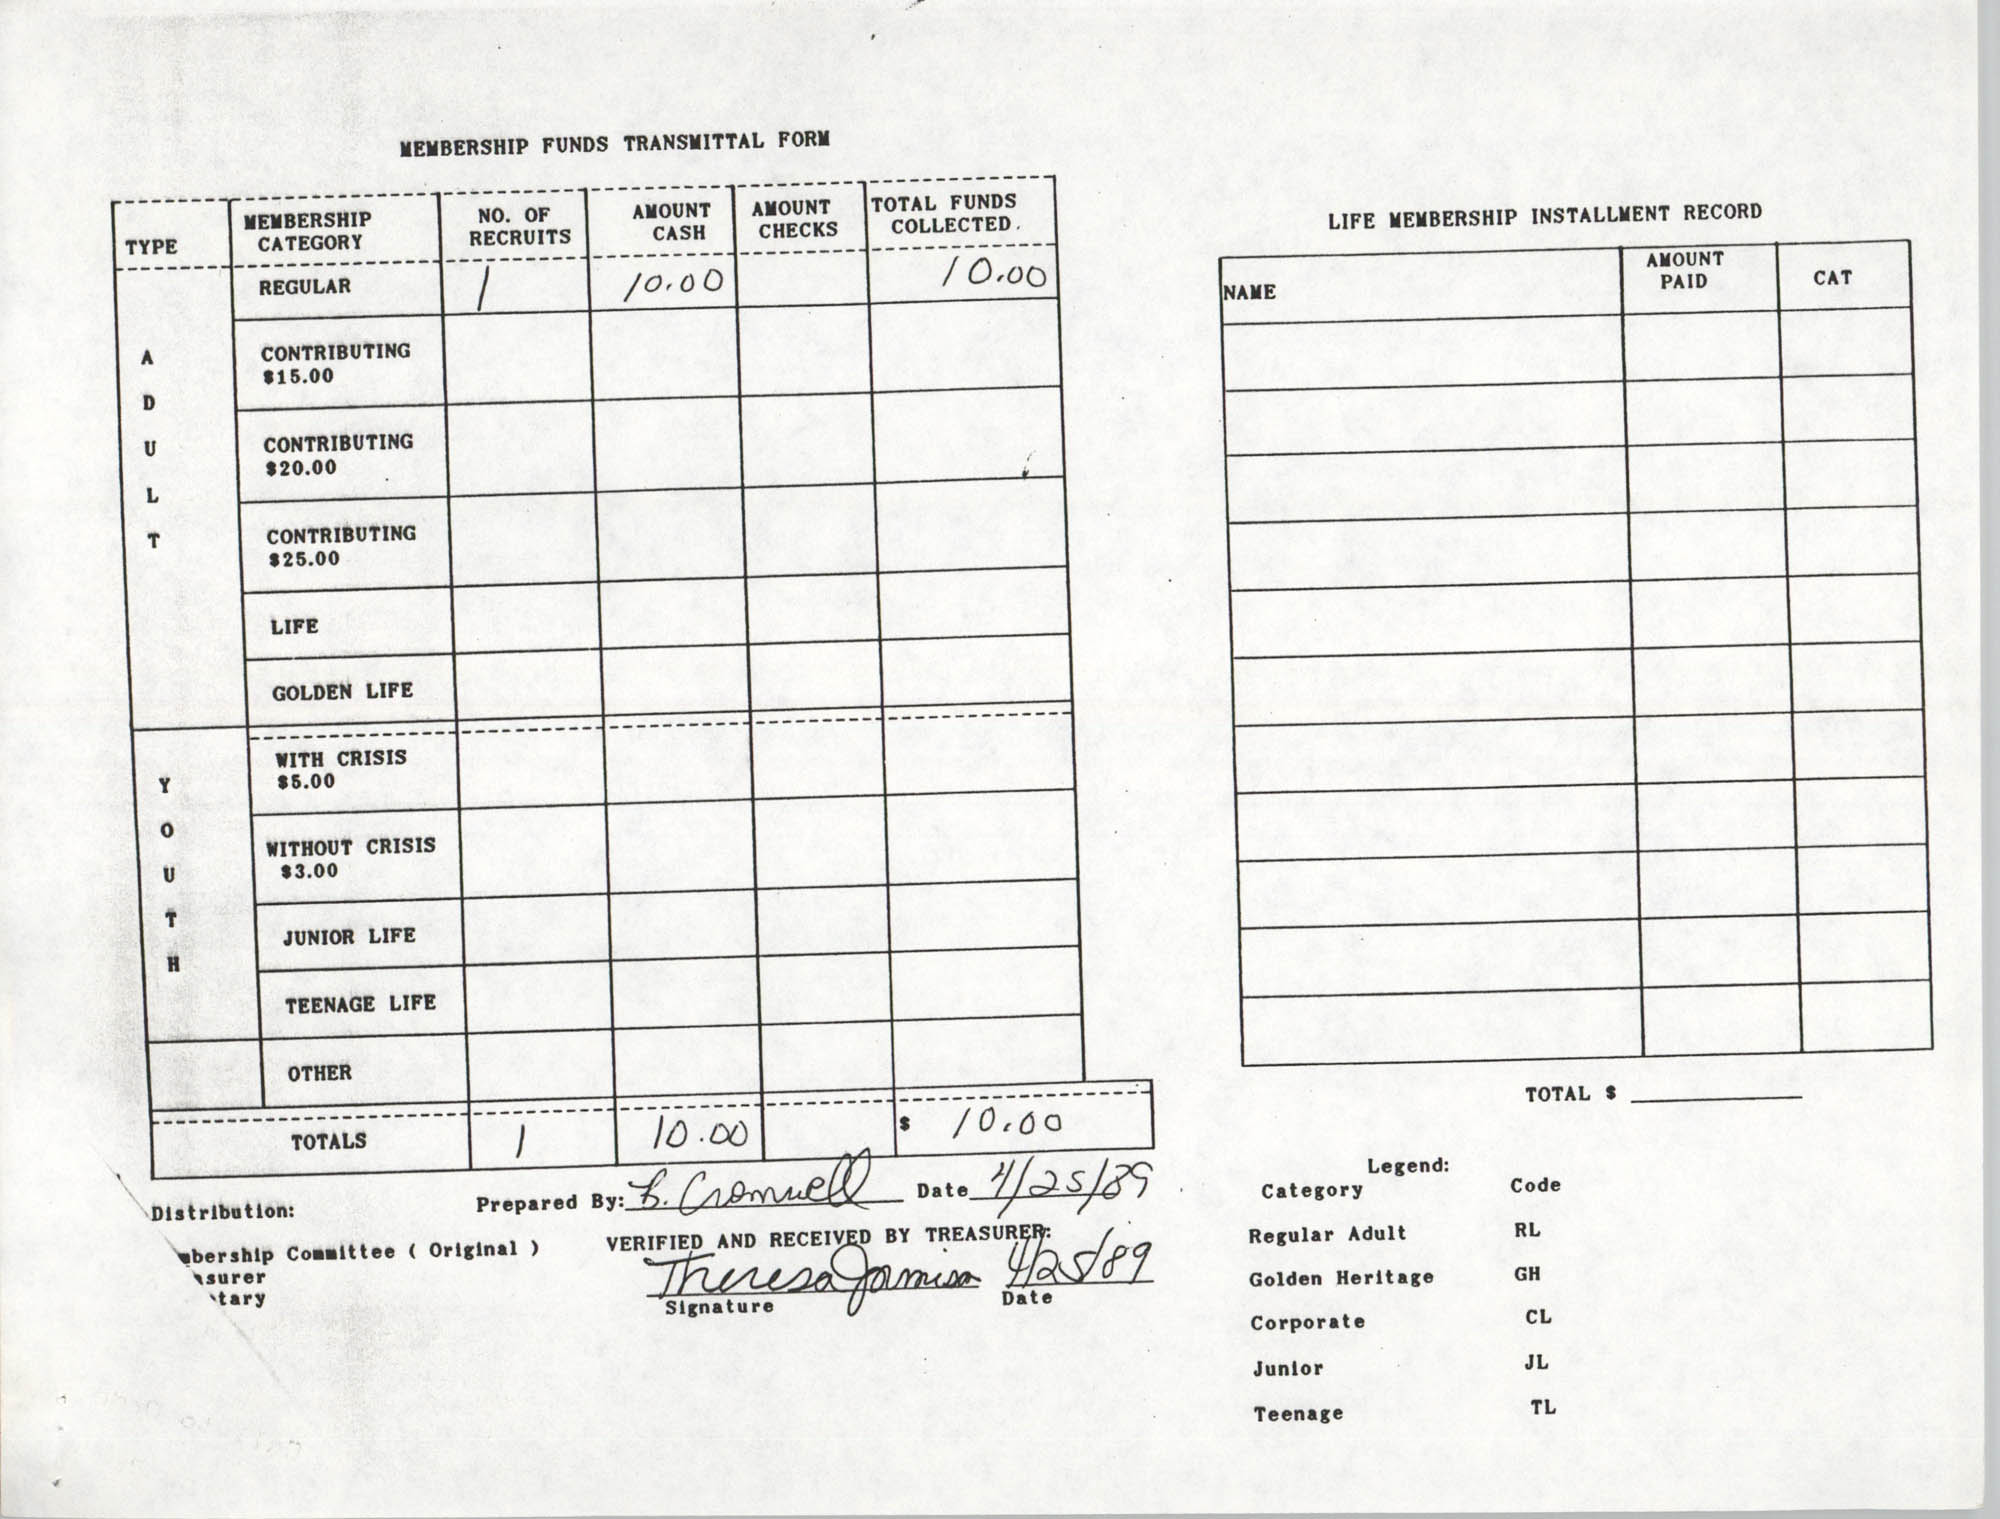 Charleston Branch of the NAACP Funds Transmittal Forms, April 1989, Page 5